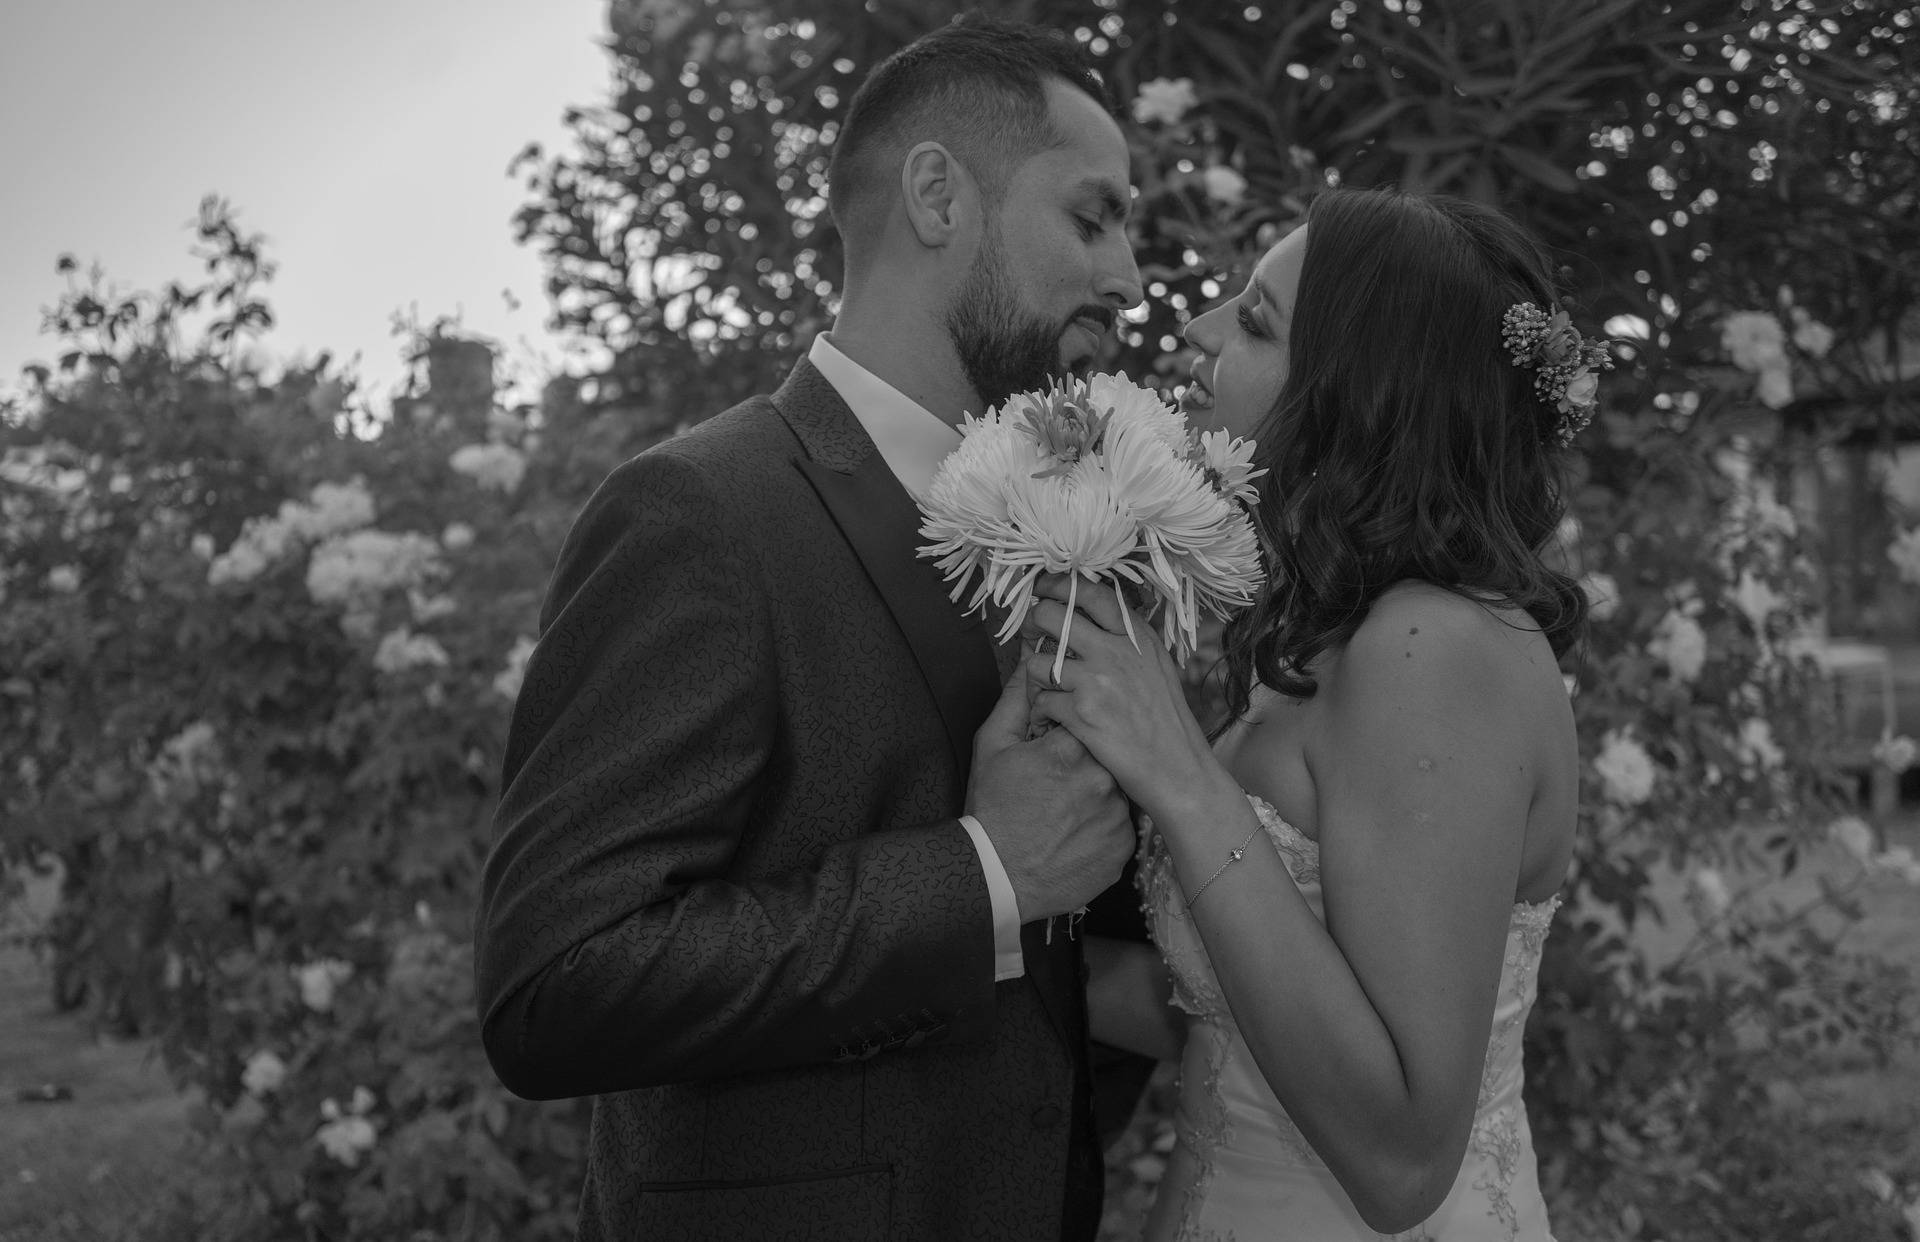 How to Change Your Life After Getting Married